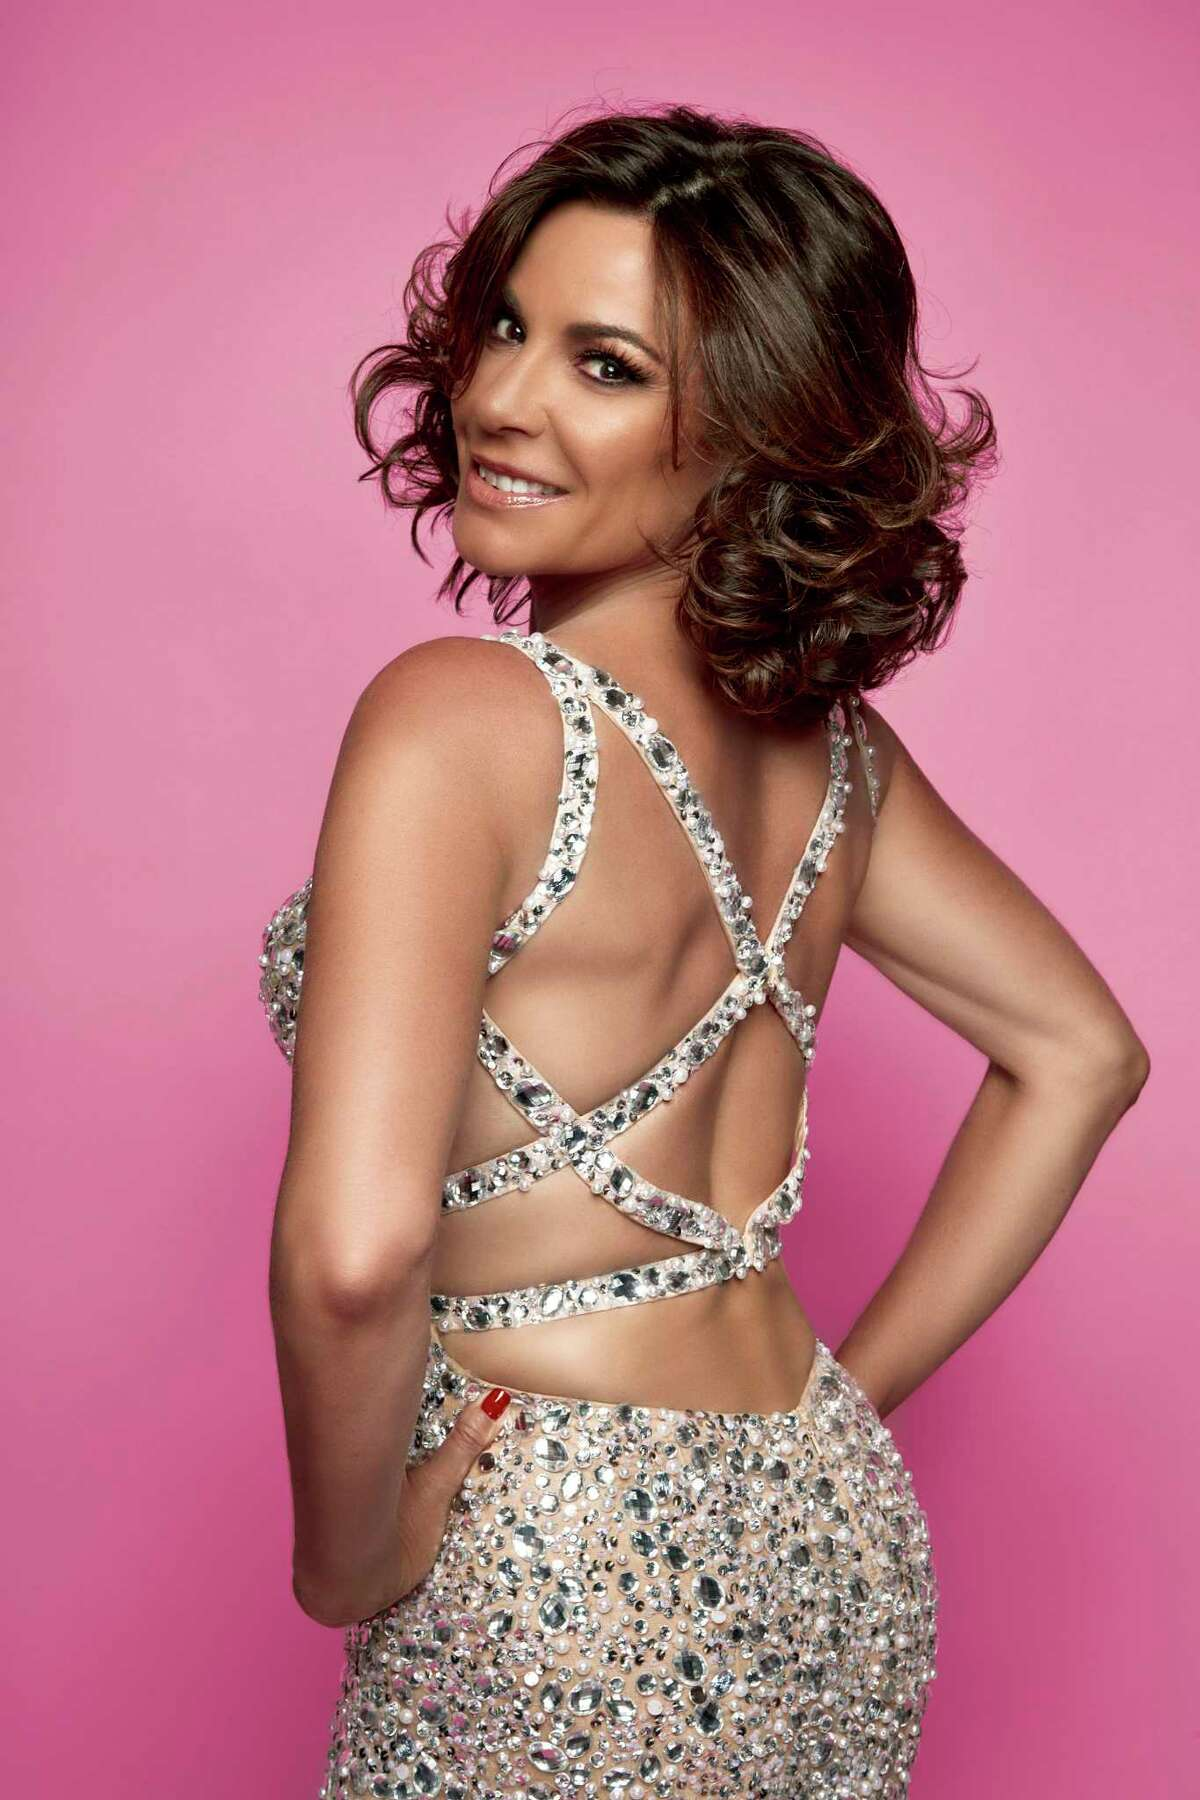 Luann De Lesseps' Christmas with The Countess will be on Dec. 6 at 8 p.m. at the Ridgefield Playhouse, 80 East Ridge Road, Ridgefield. Tickets are $75-$175. For more information, visit: ridgefieldplayhouse.org.